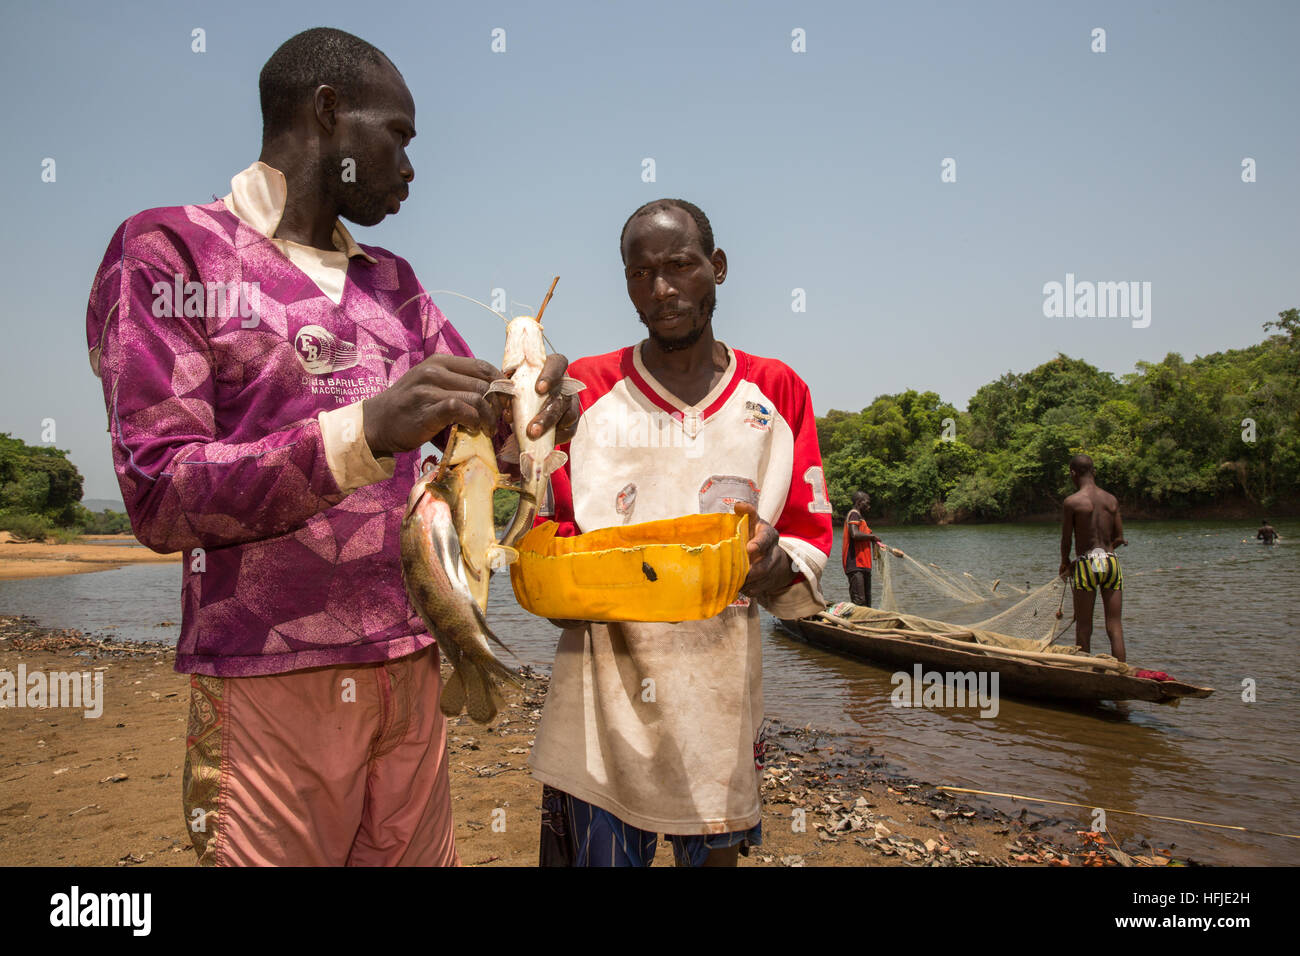 Baro village, Guinea, 1st May 2015: Fishermen catch fish in their net. This time is normally good for fishing because Stock Photo